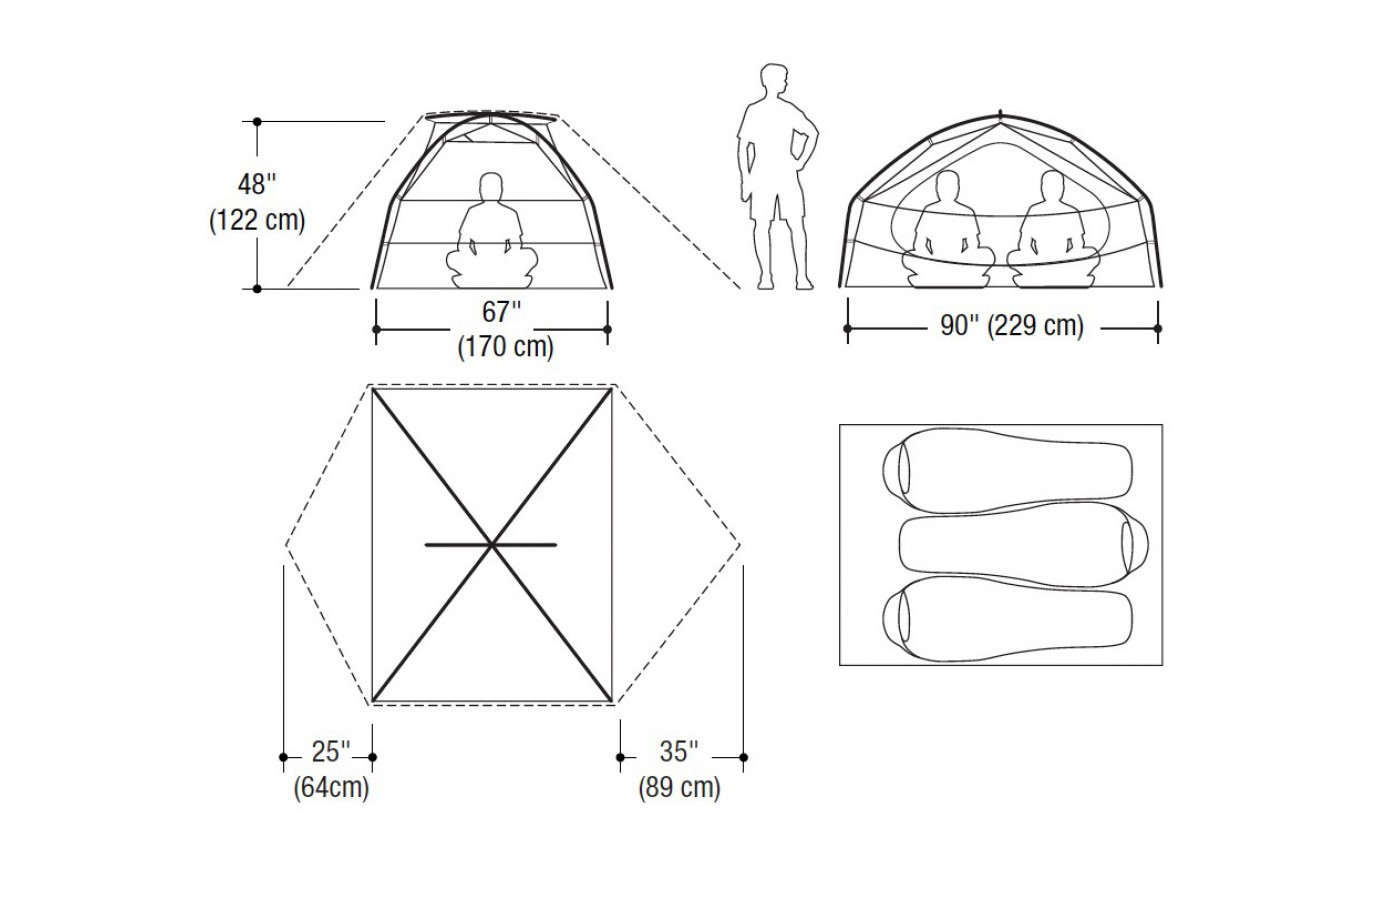 This unique bottomed tent allows for more room than most dome tents, without worry of having the fabric against you if you are too close to the wall.